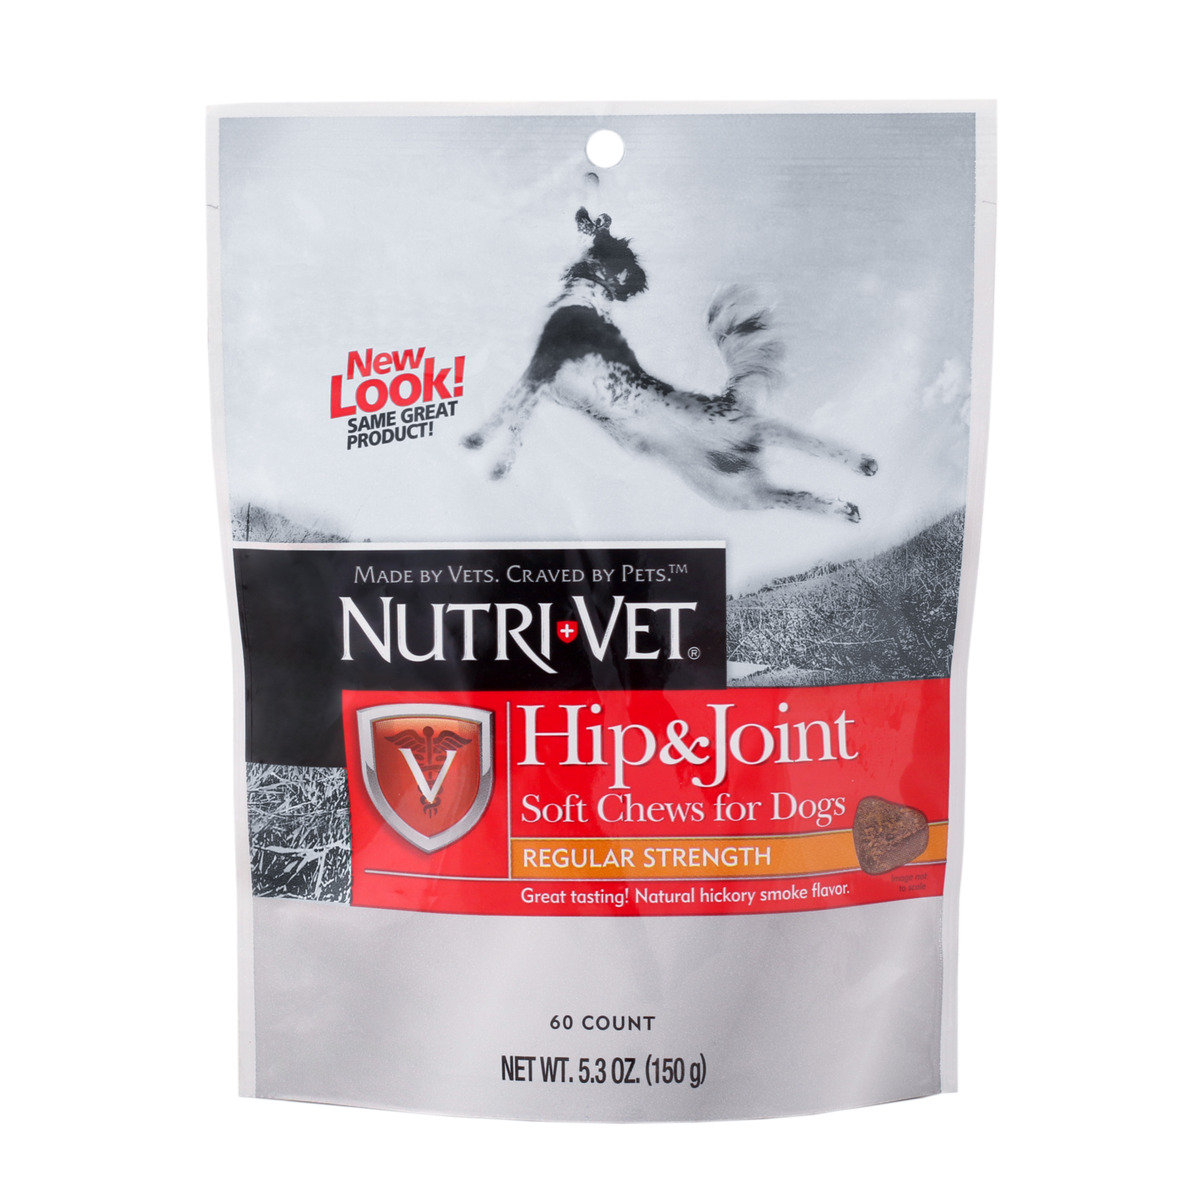 Hip & Joint Level 2 Soft Chews  NV11448-3